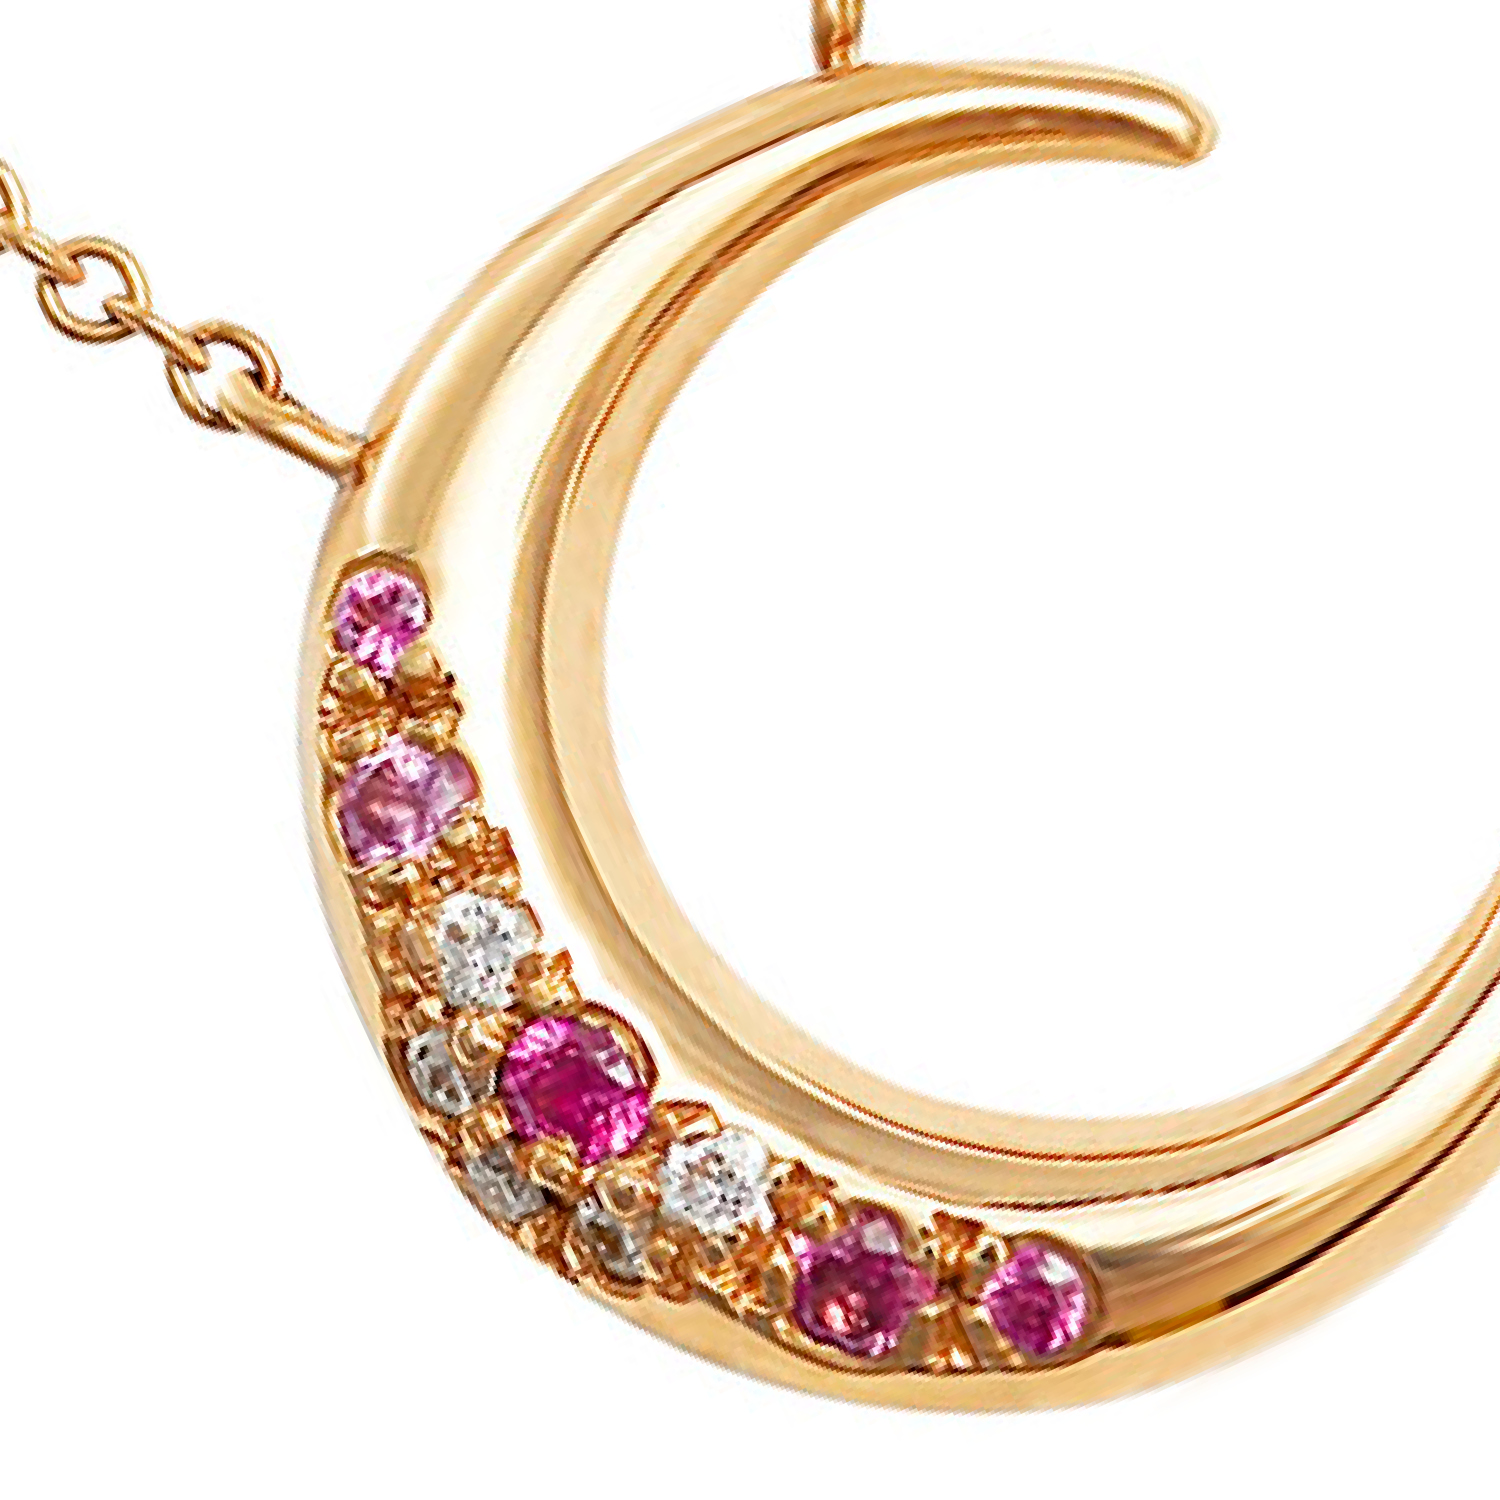 To the Moon and Back Sapphire and Diamond Necklace - Hargreaves Stockholm